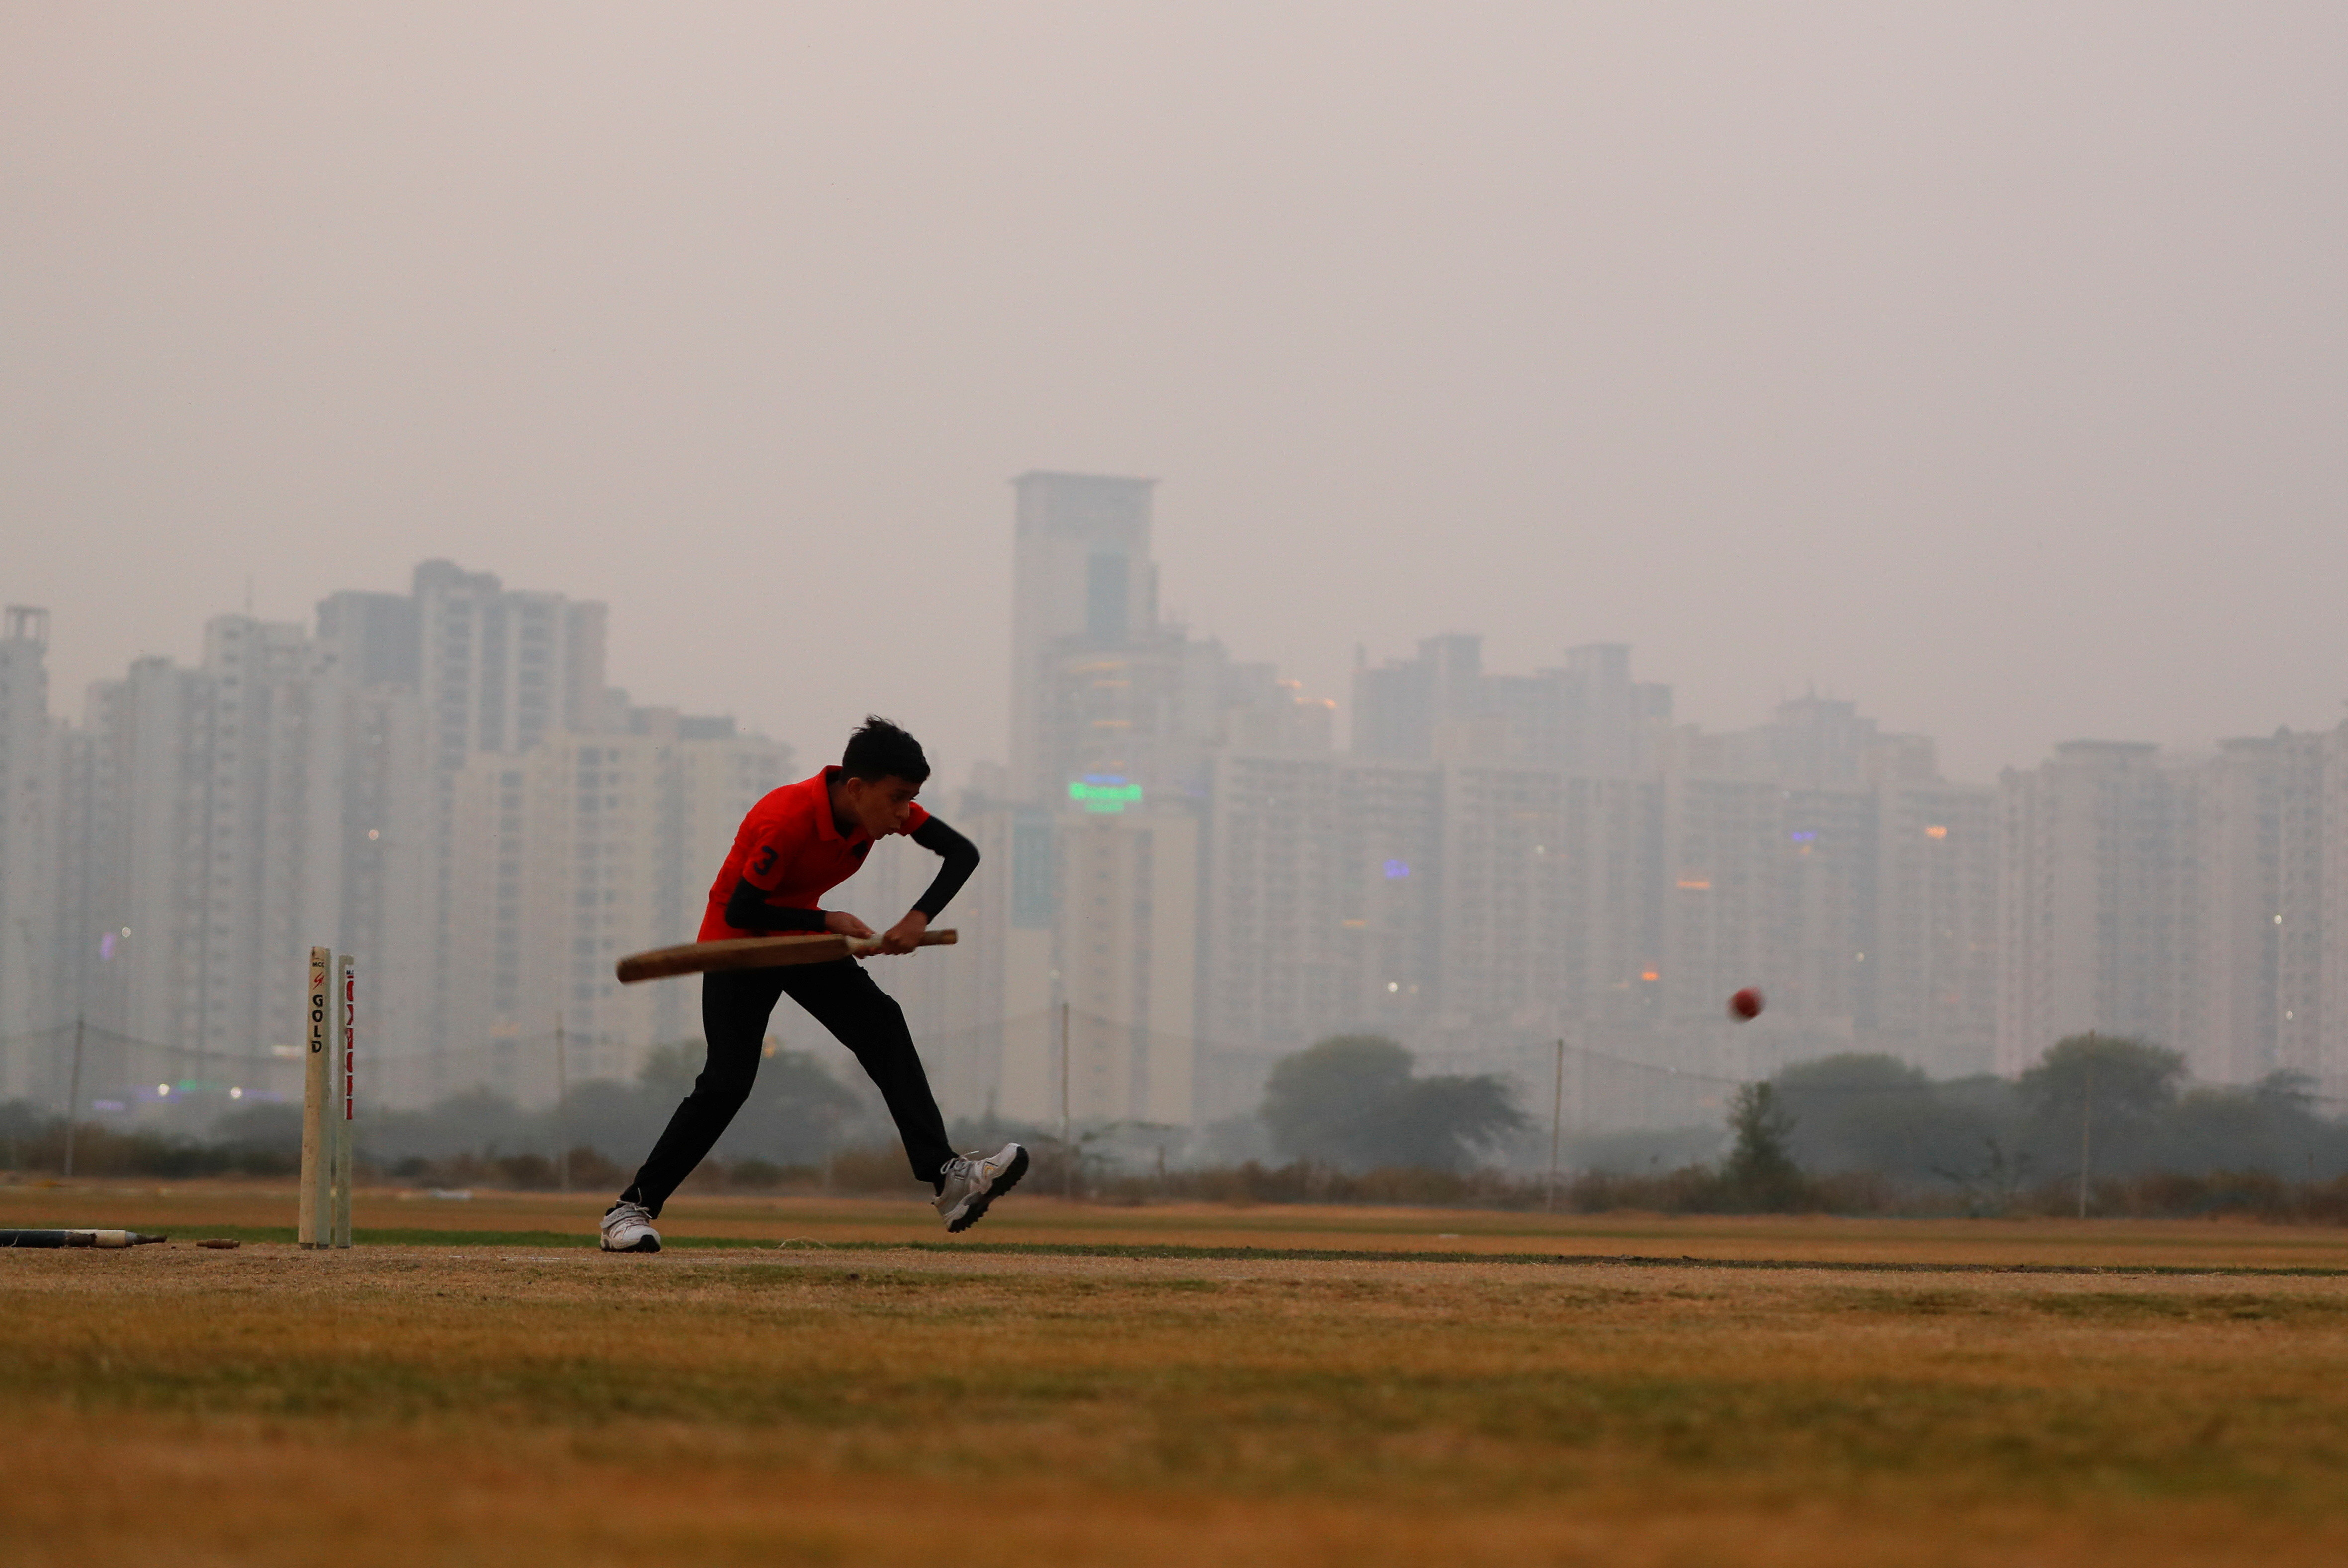 A boy plays cricket amidst smog at a playground in Noida on the outskirts of New Delhi, India, November 14, 2020.